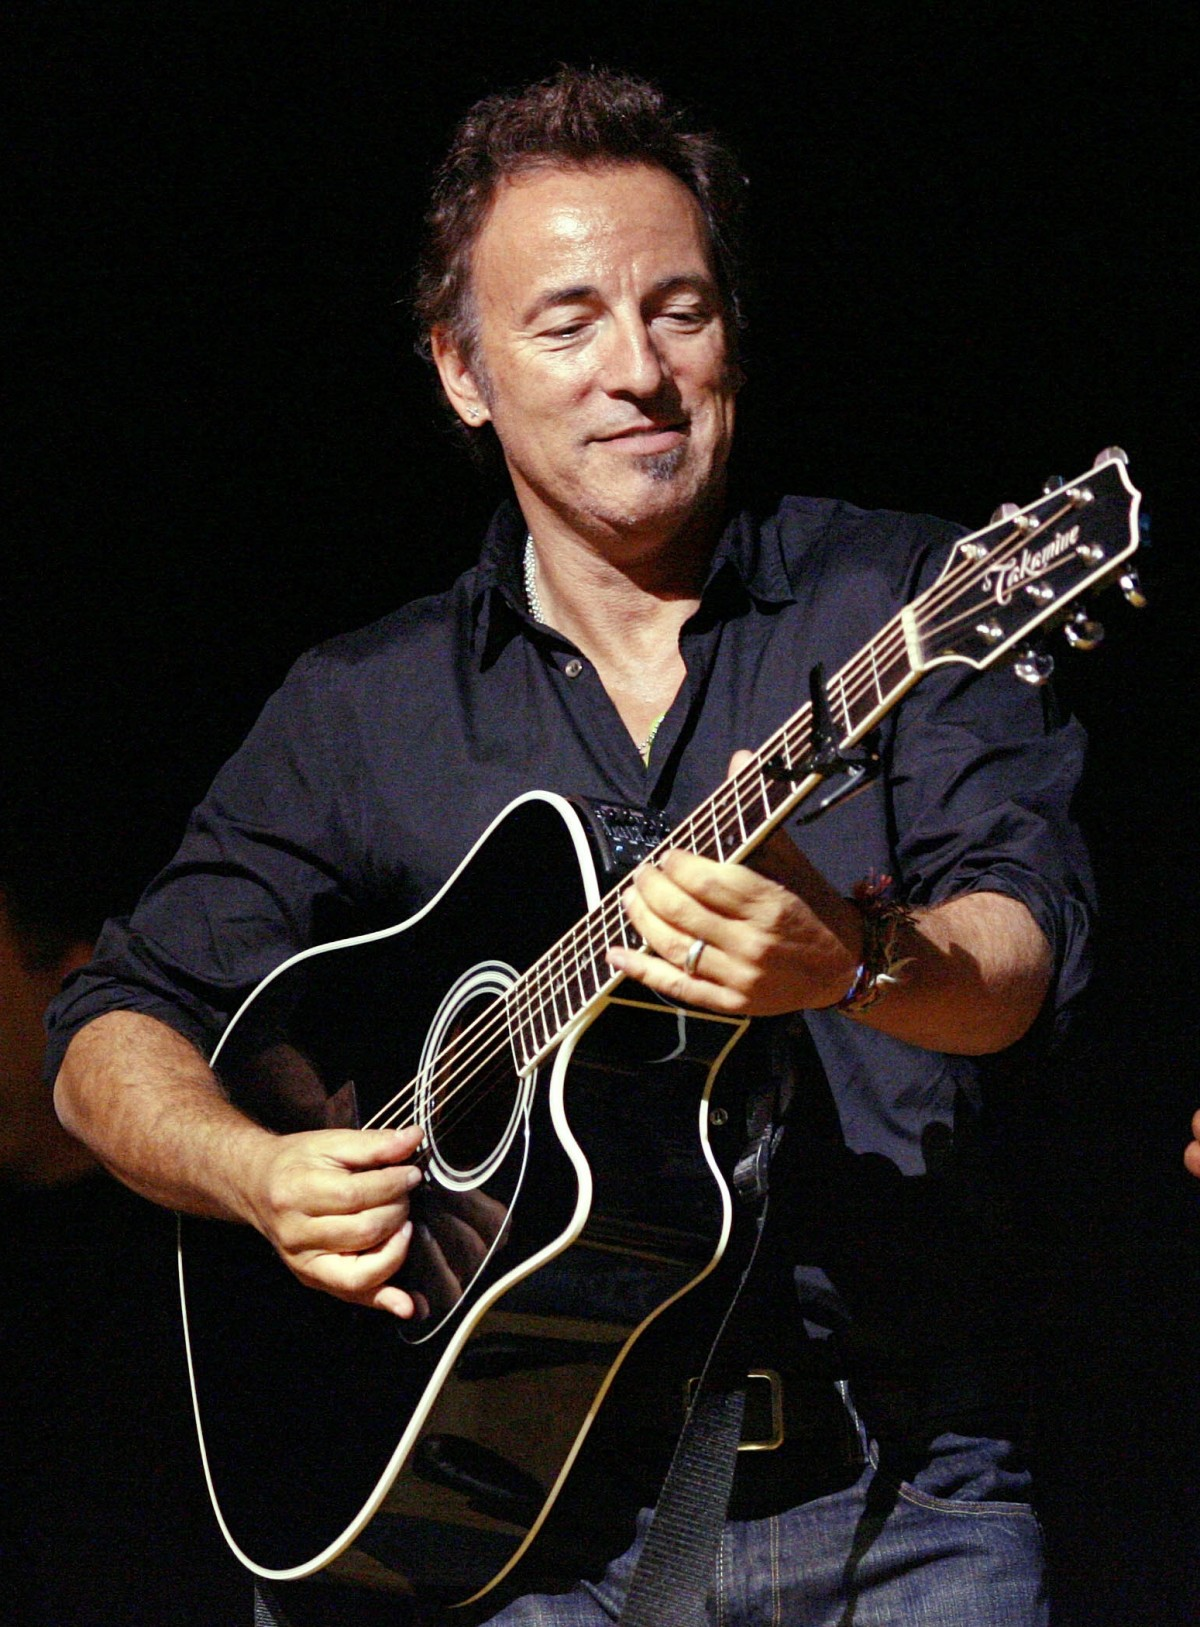 Springsteen in Italia, Barley Arts diffida i siti secondary ticketing. E annuncia un esposto in Procura